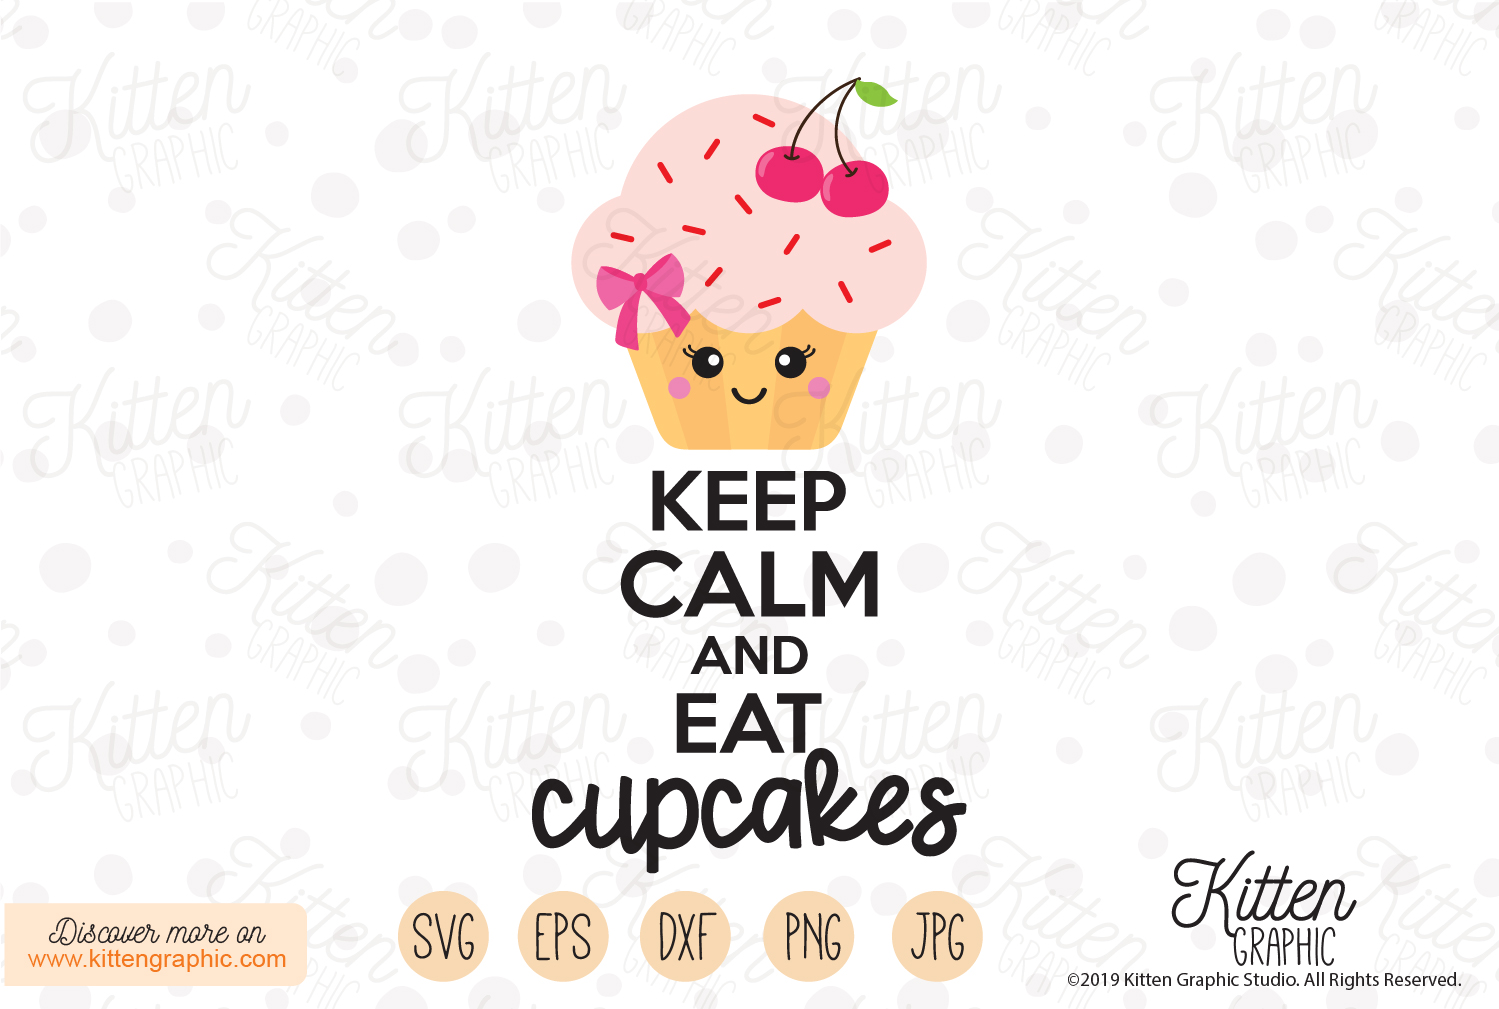 Download Free Keep Calm And Eat Cupcakes Graphic By Kittengraphicstudio for Cricut Explore, Silhouette and other cutting machines.